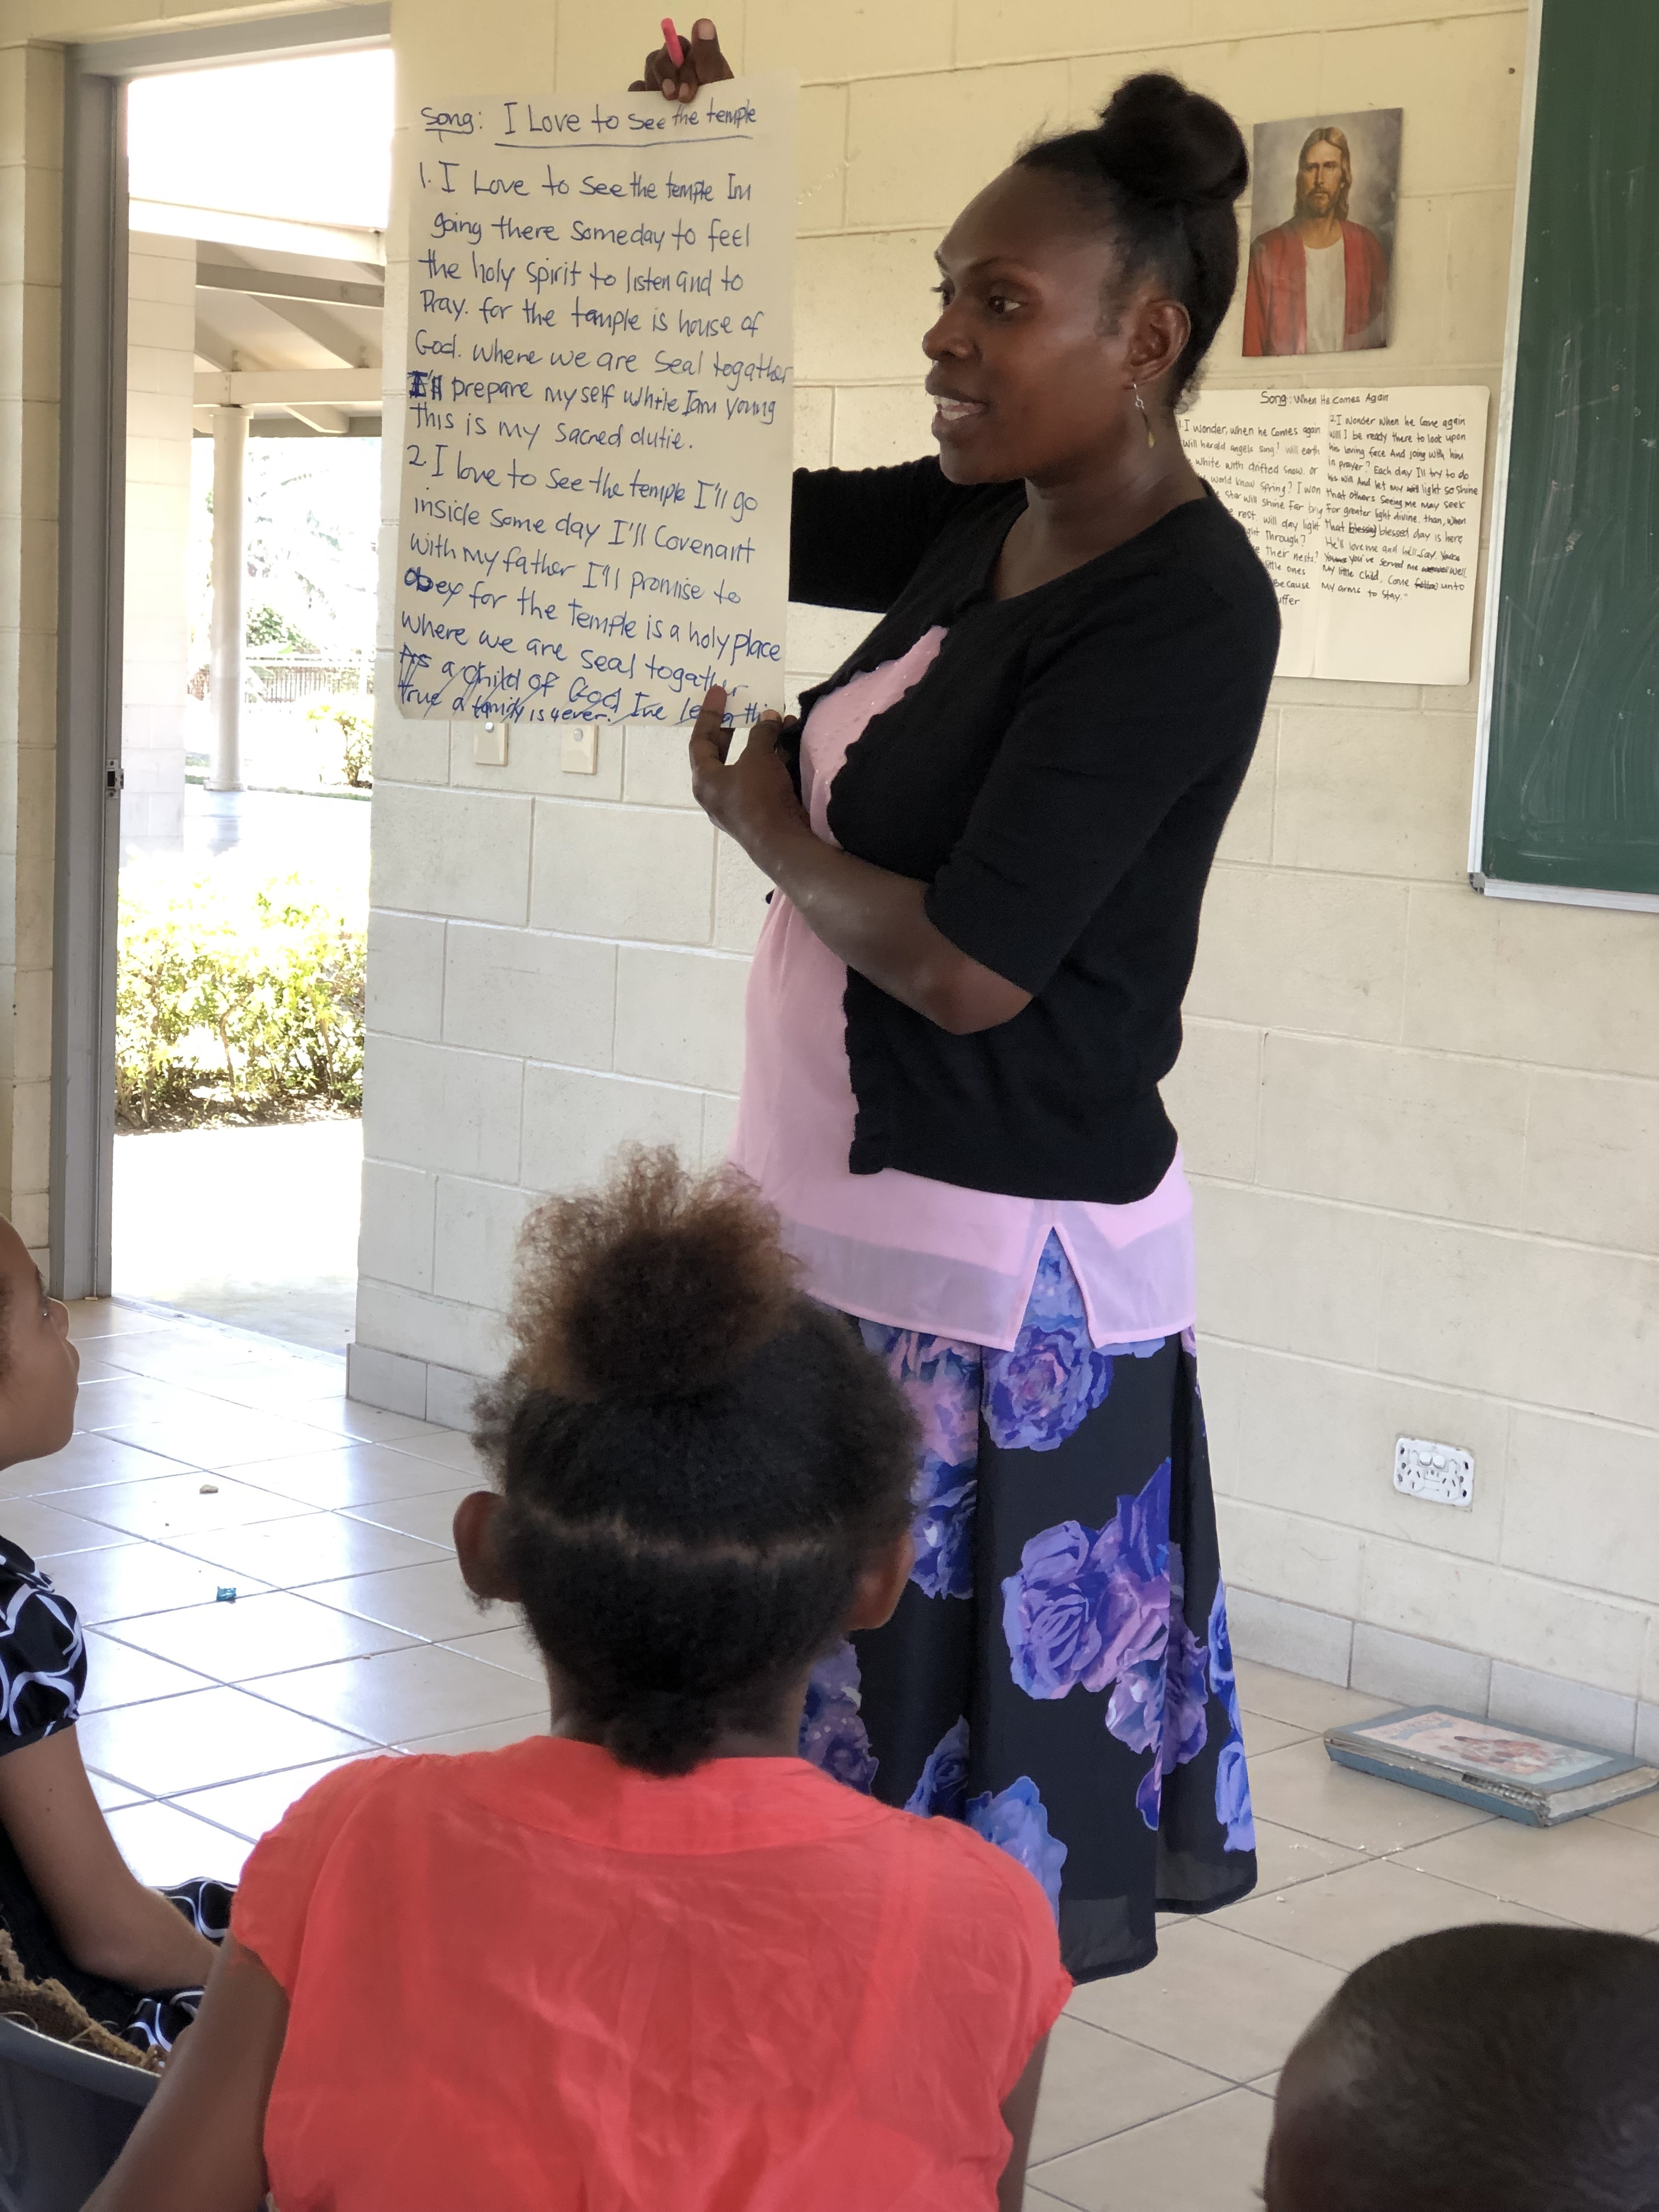 Members from the Port Moresby Papua New Guinea Stake and the Gerehu and Rigo districts in Papua New Guinea participate in a leadership training with Sister Sharon Eubank during her visit to the Pacific Area in October 2019.